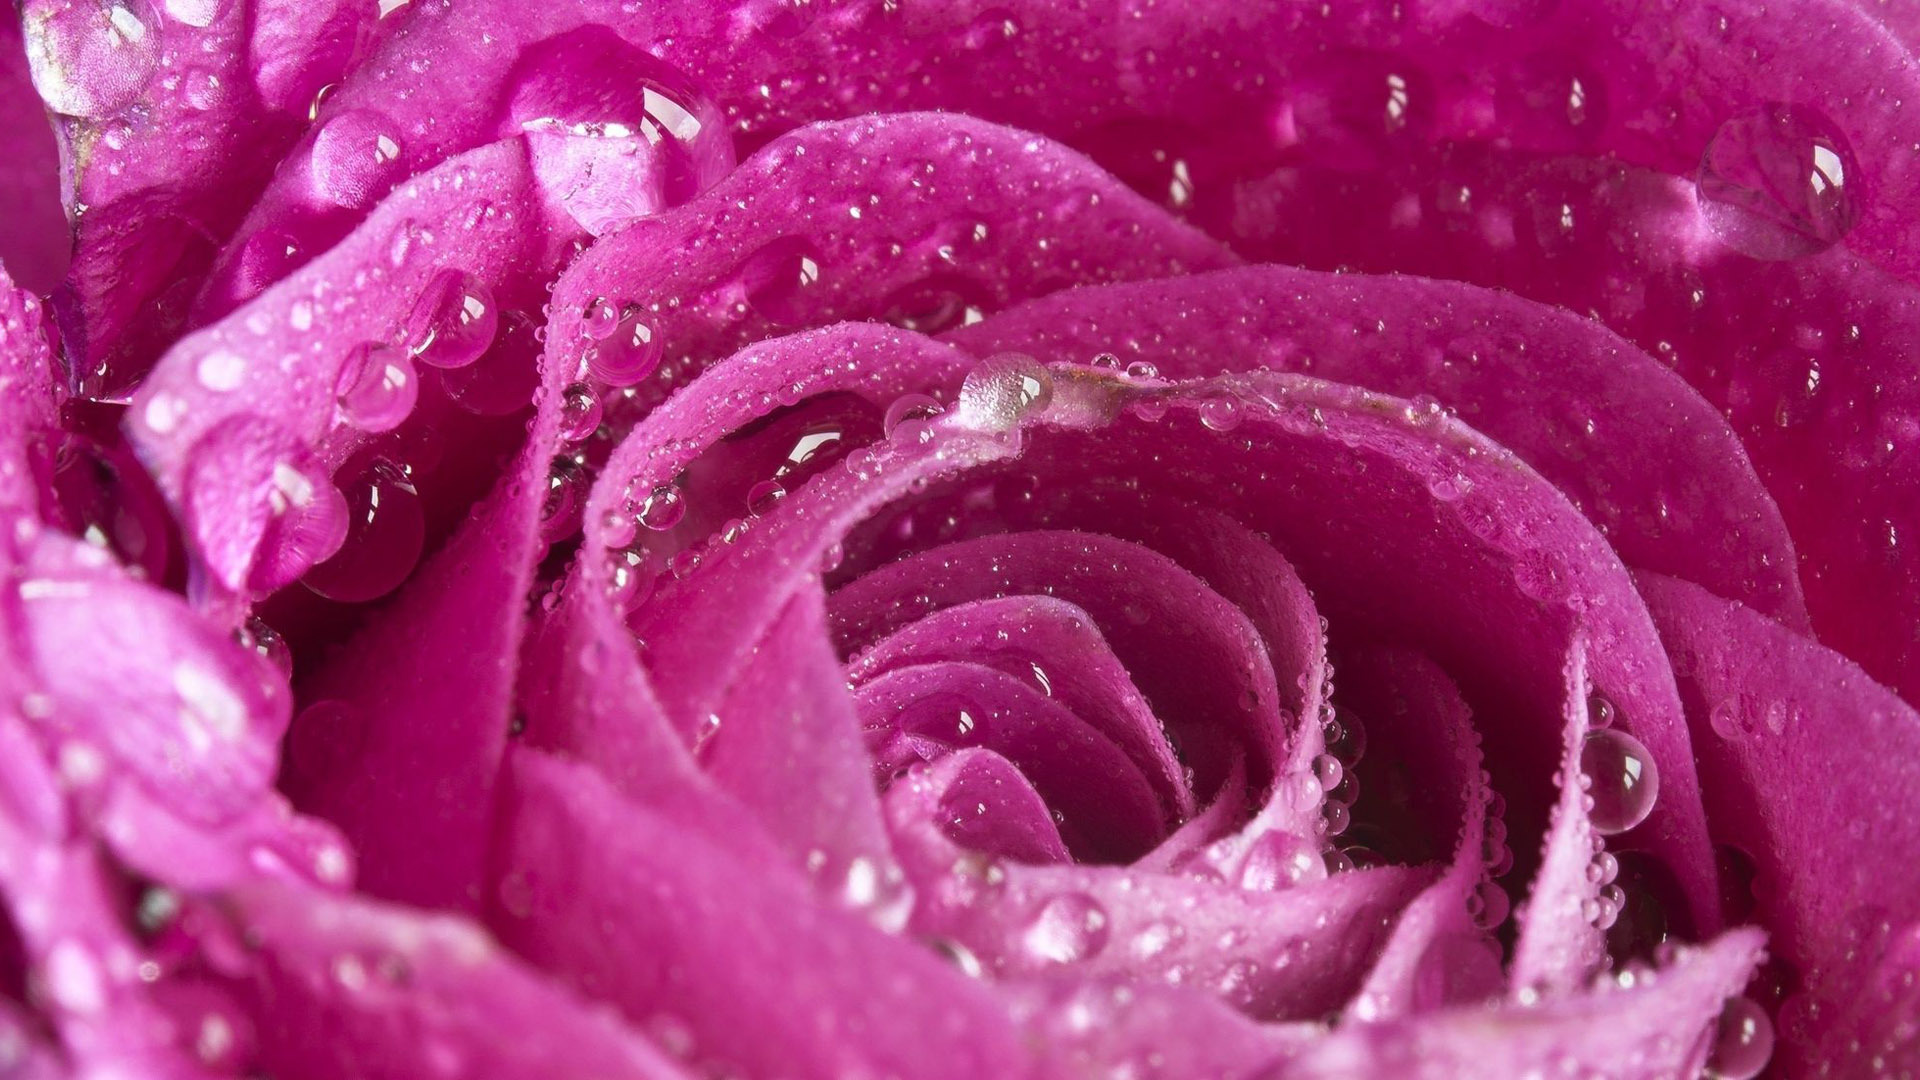 water wallpaper pink rose